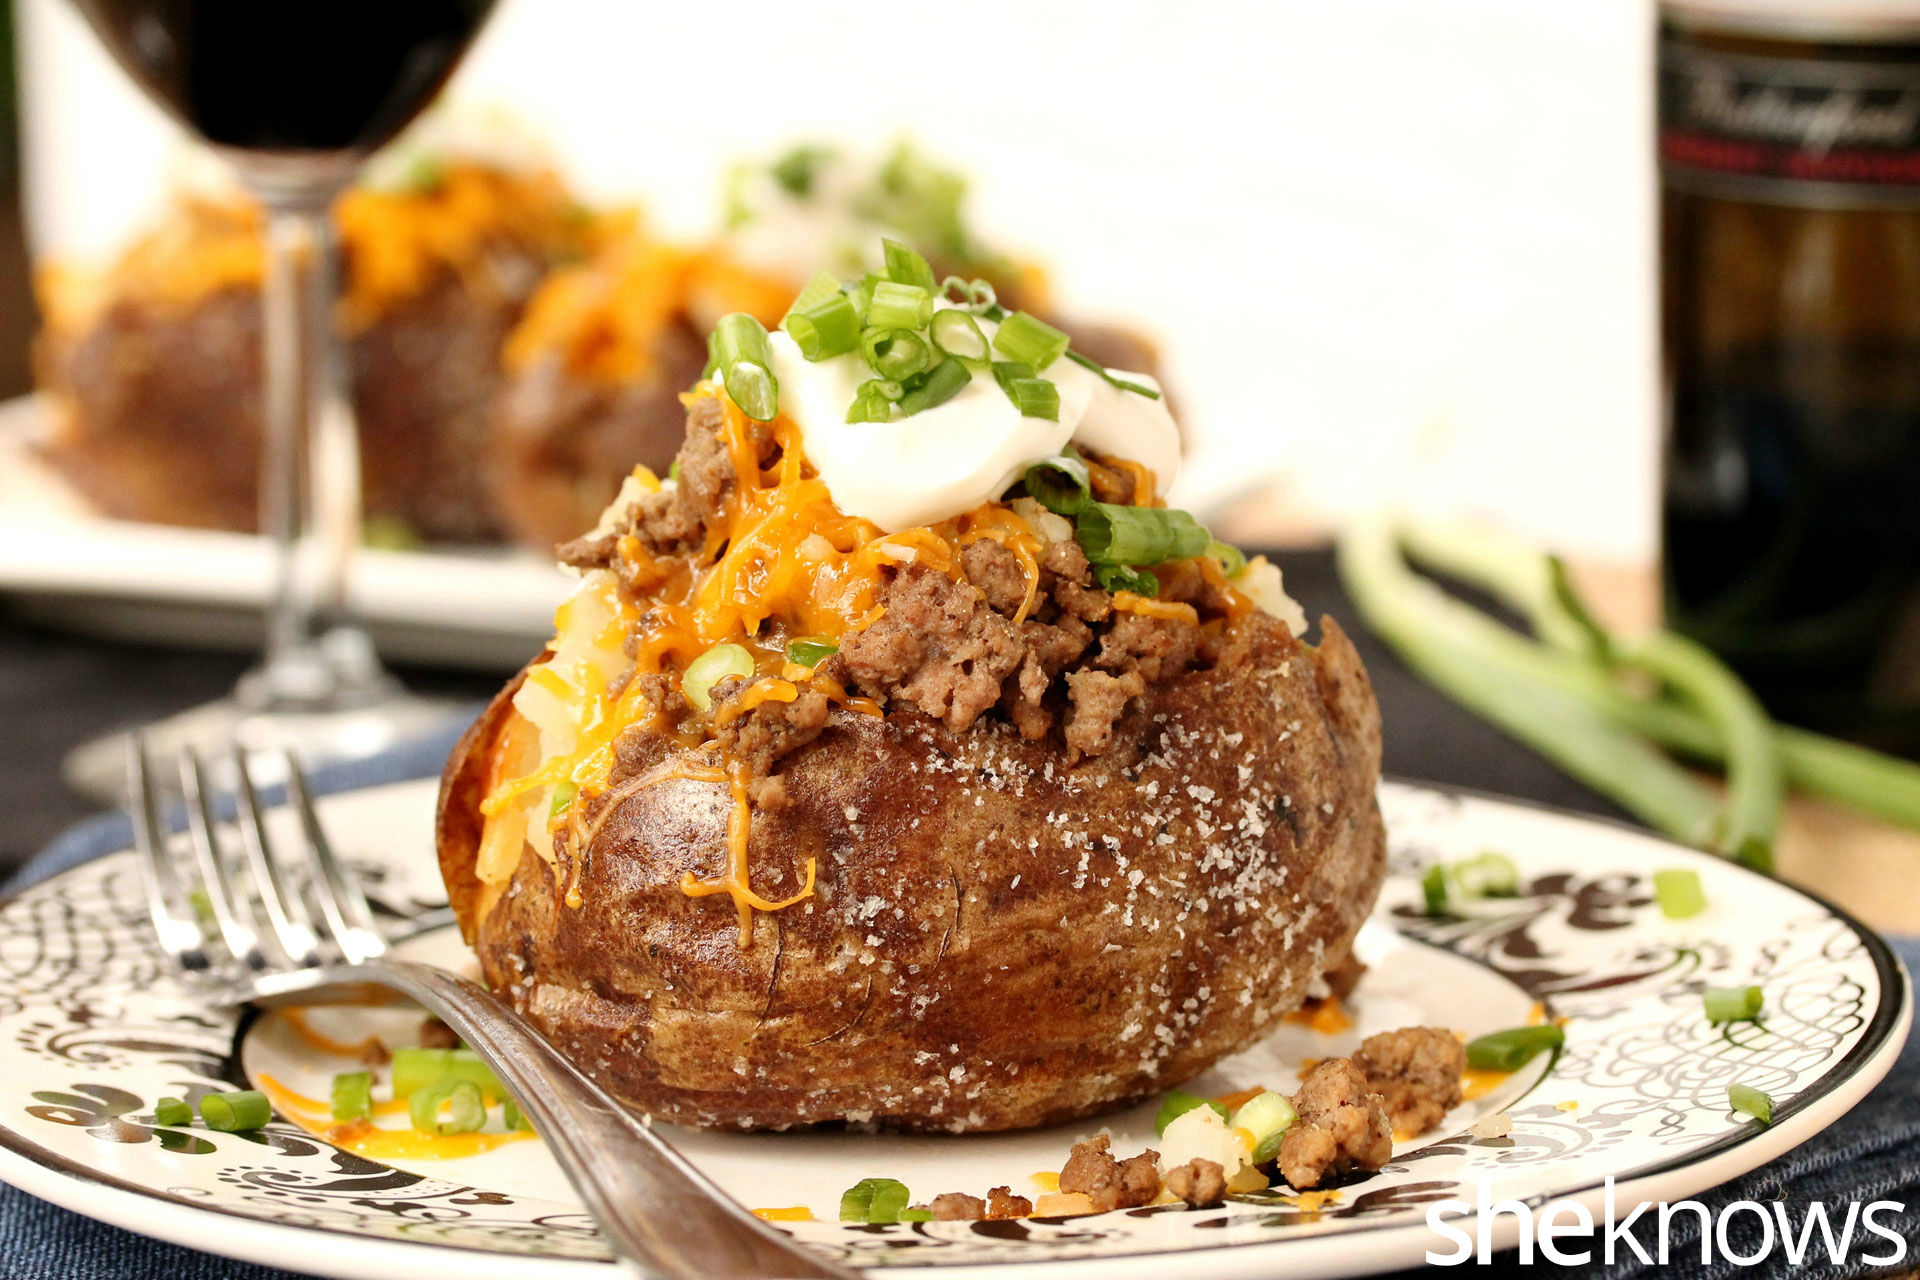 salt-crusted baked potato with ground beef